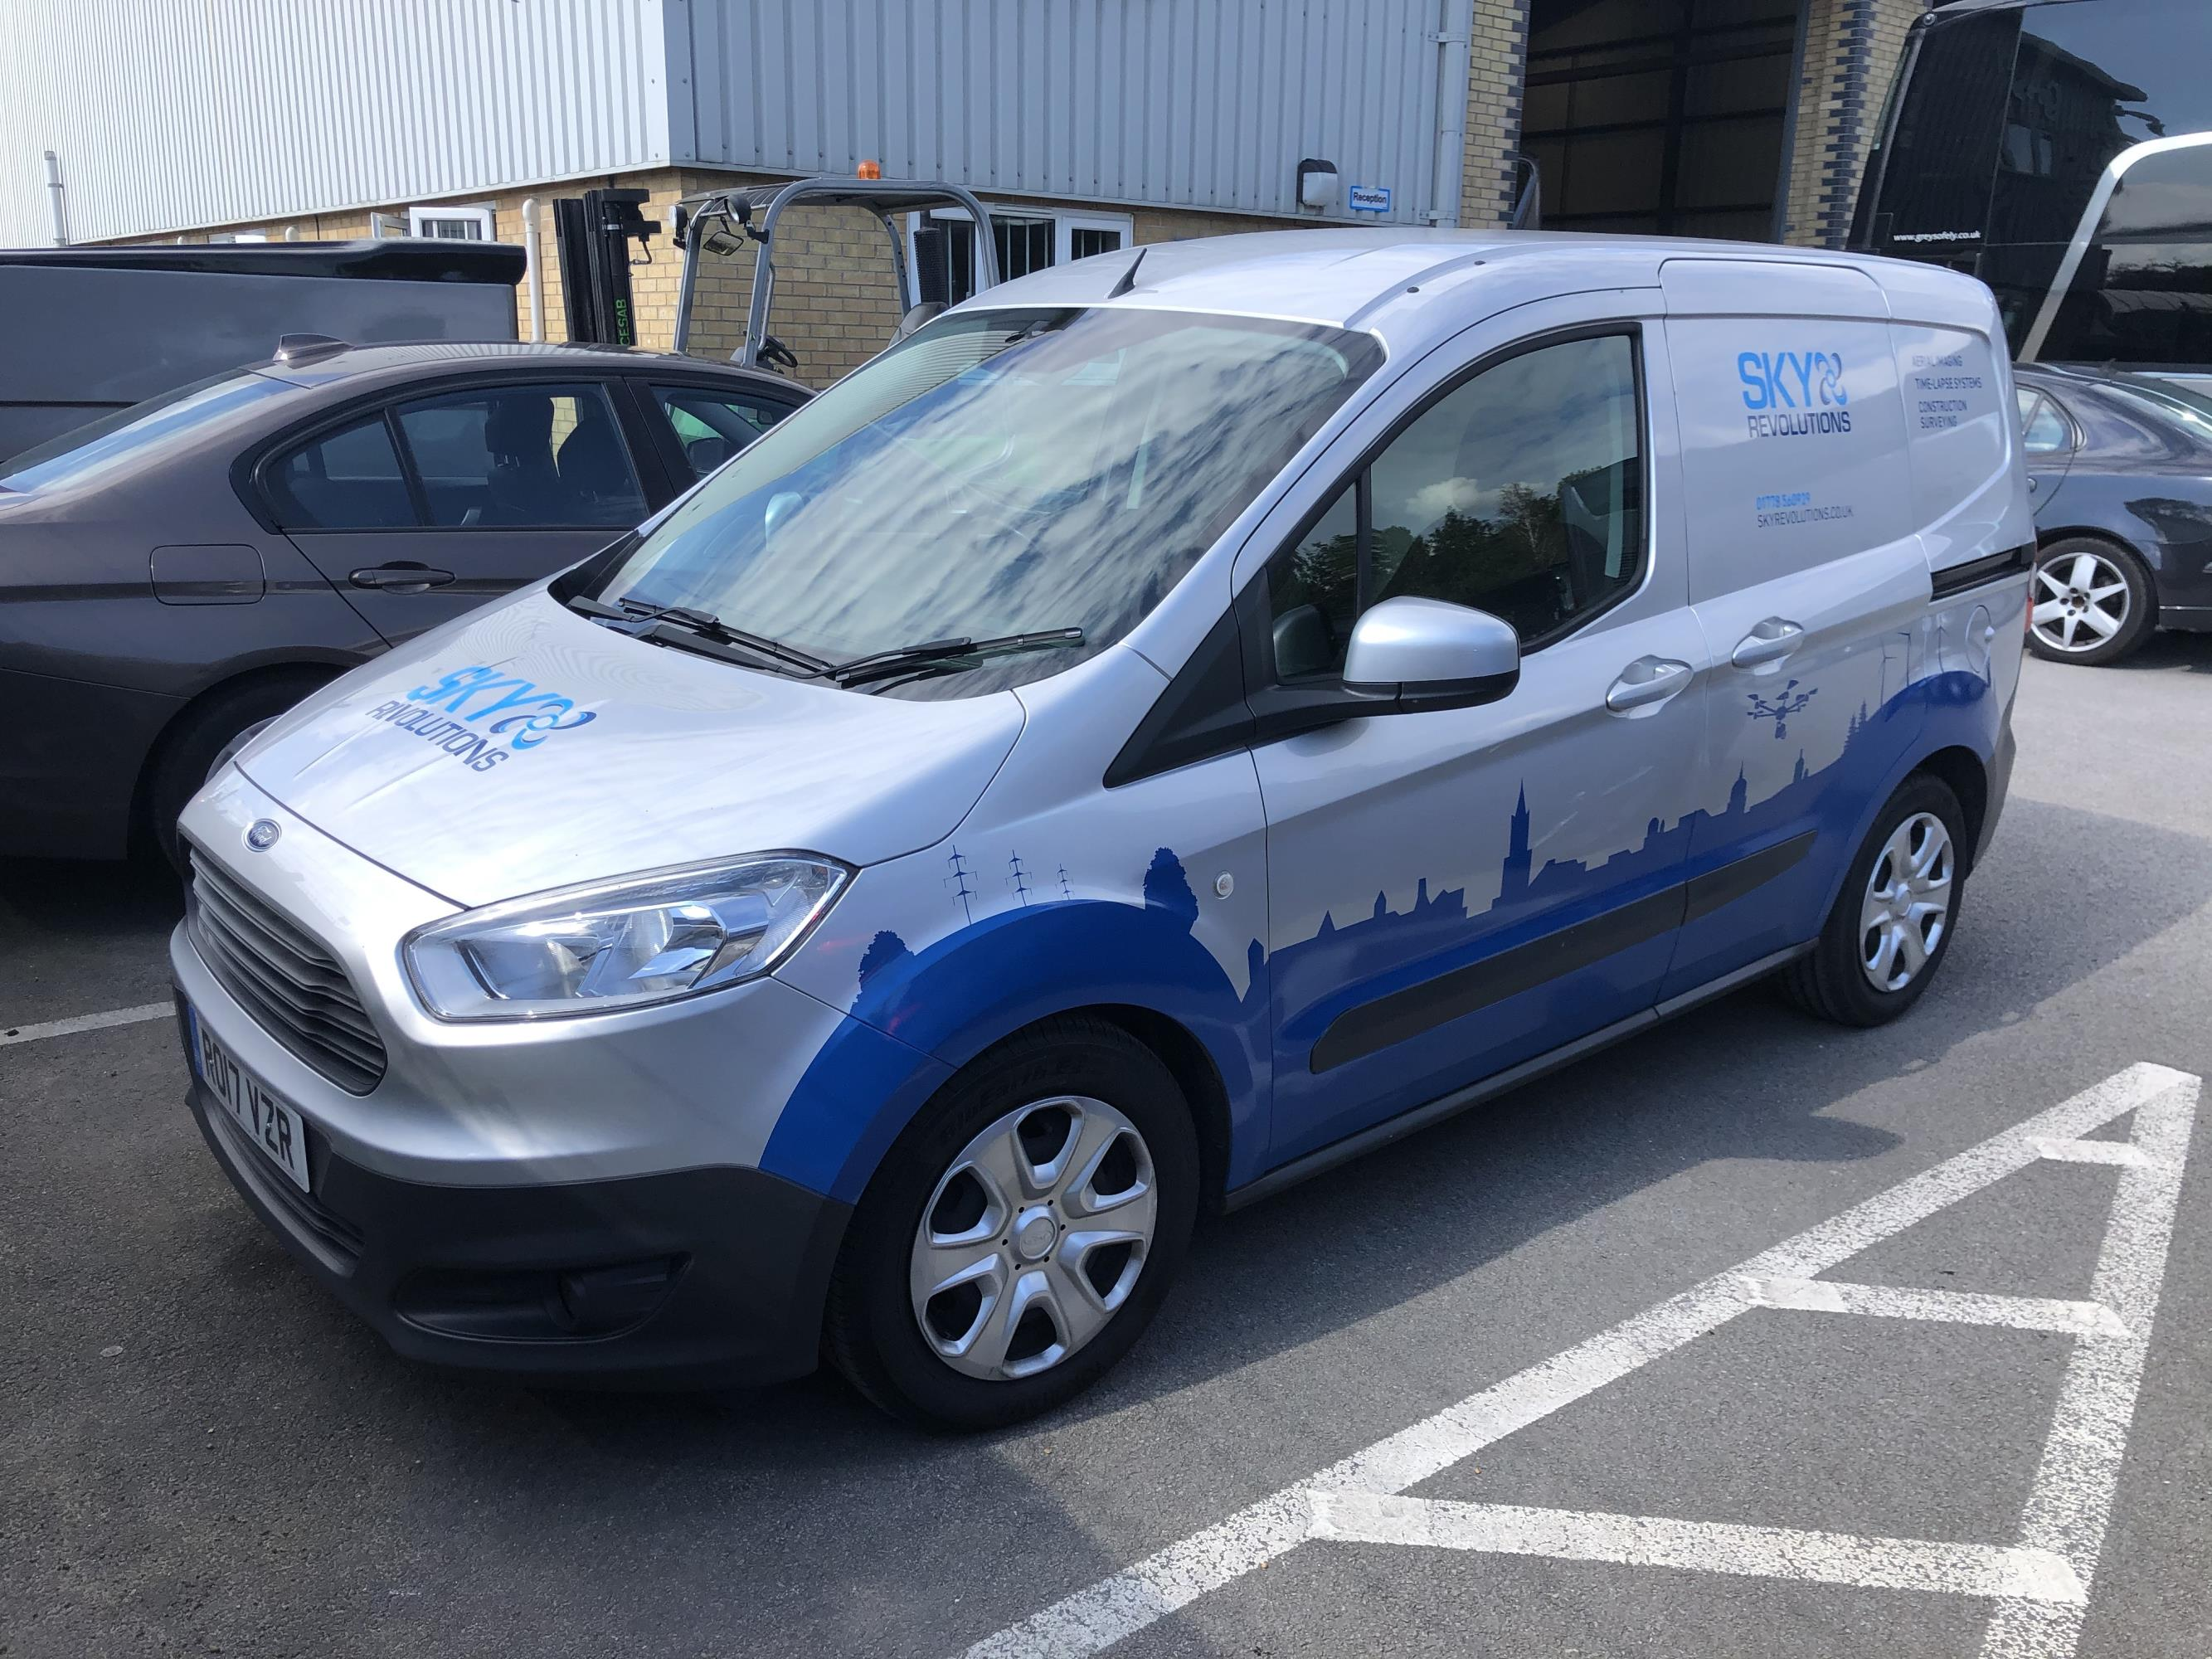 Sky revolutions ford connect van wrap